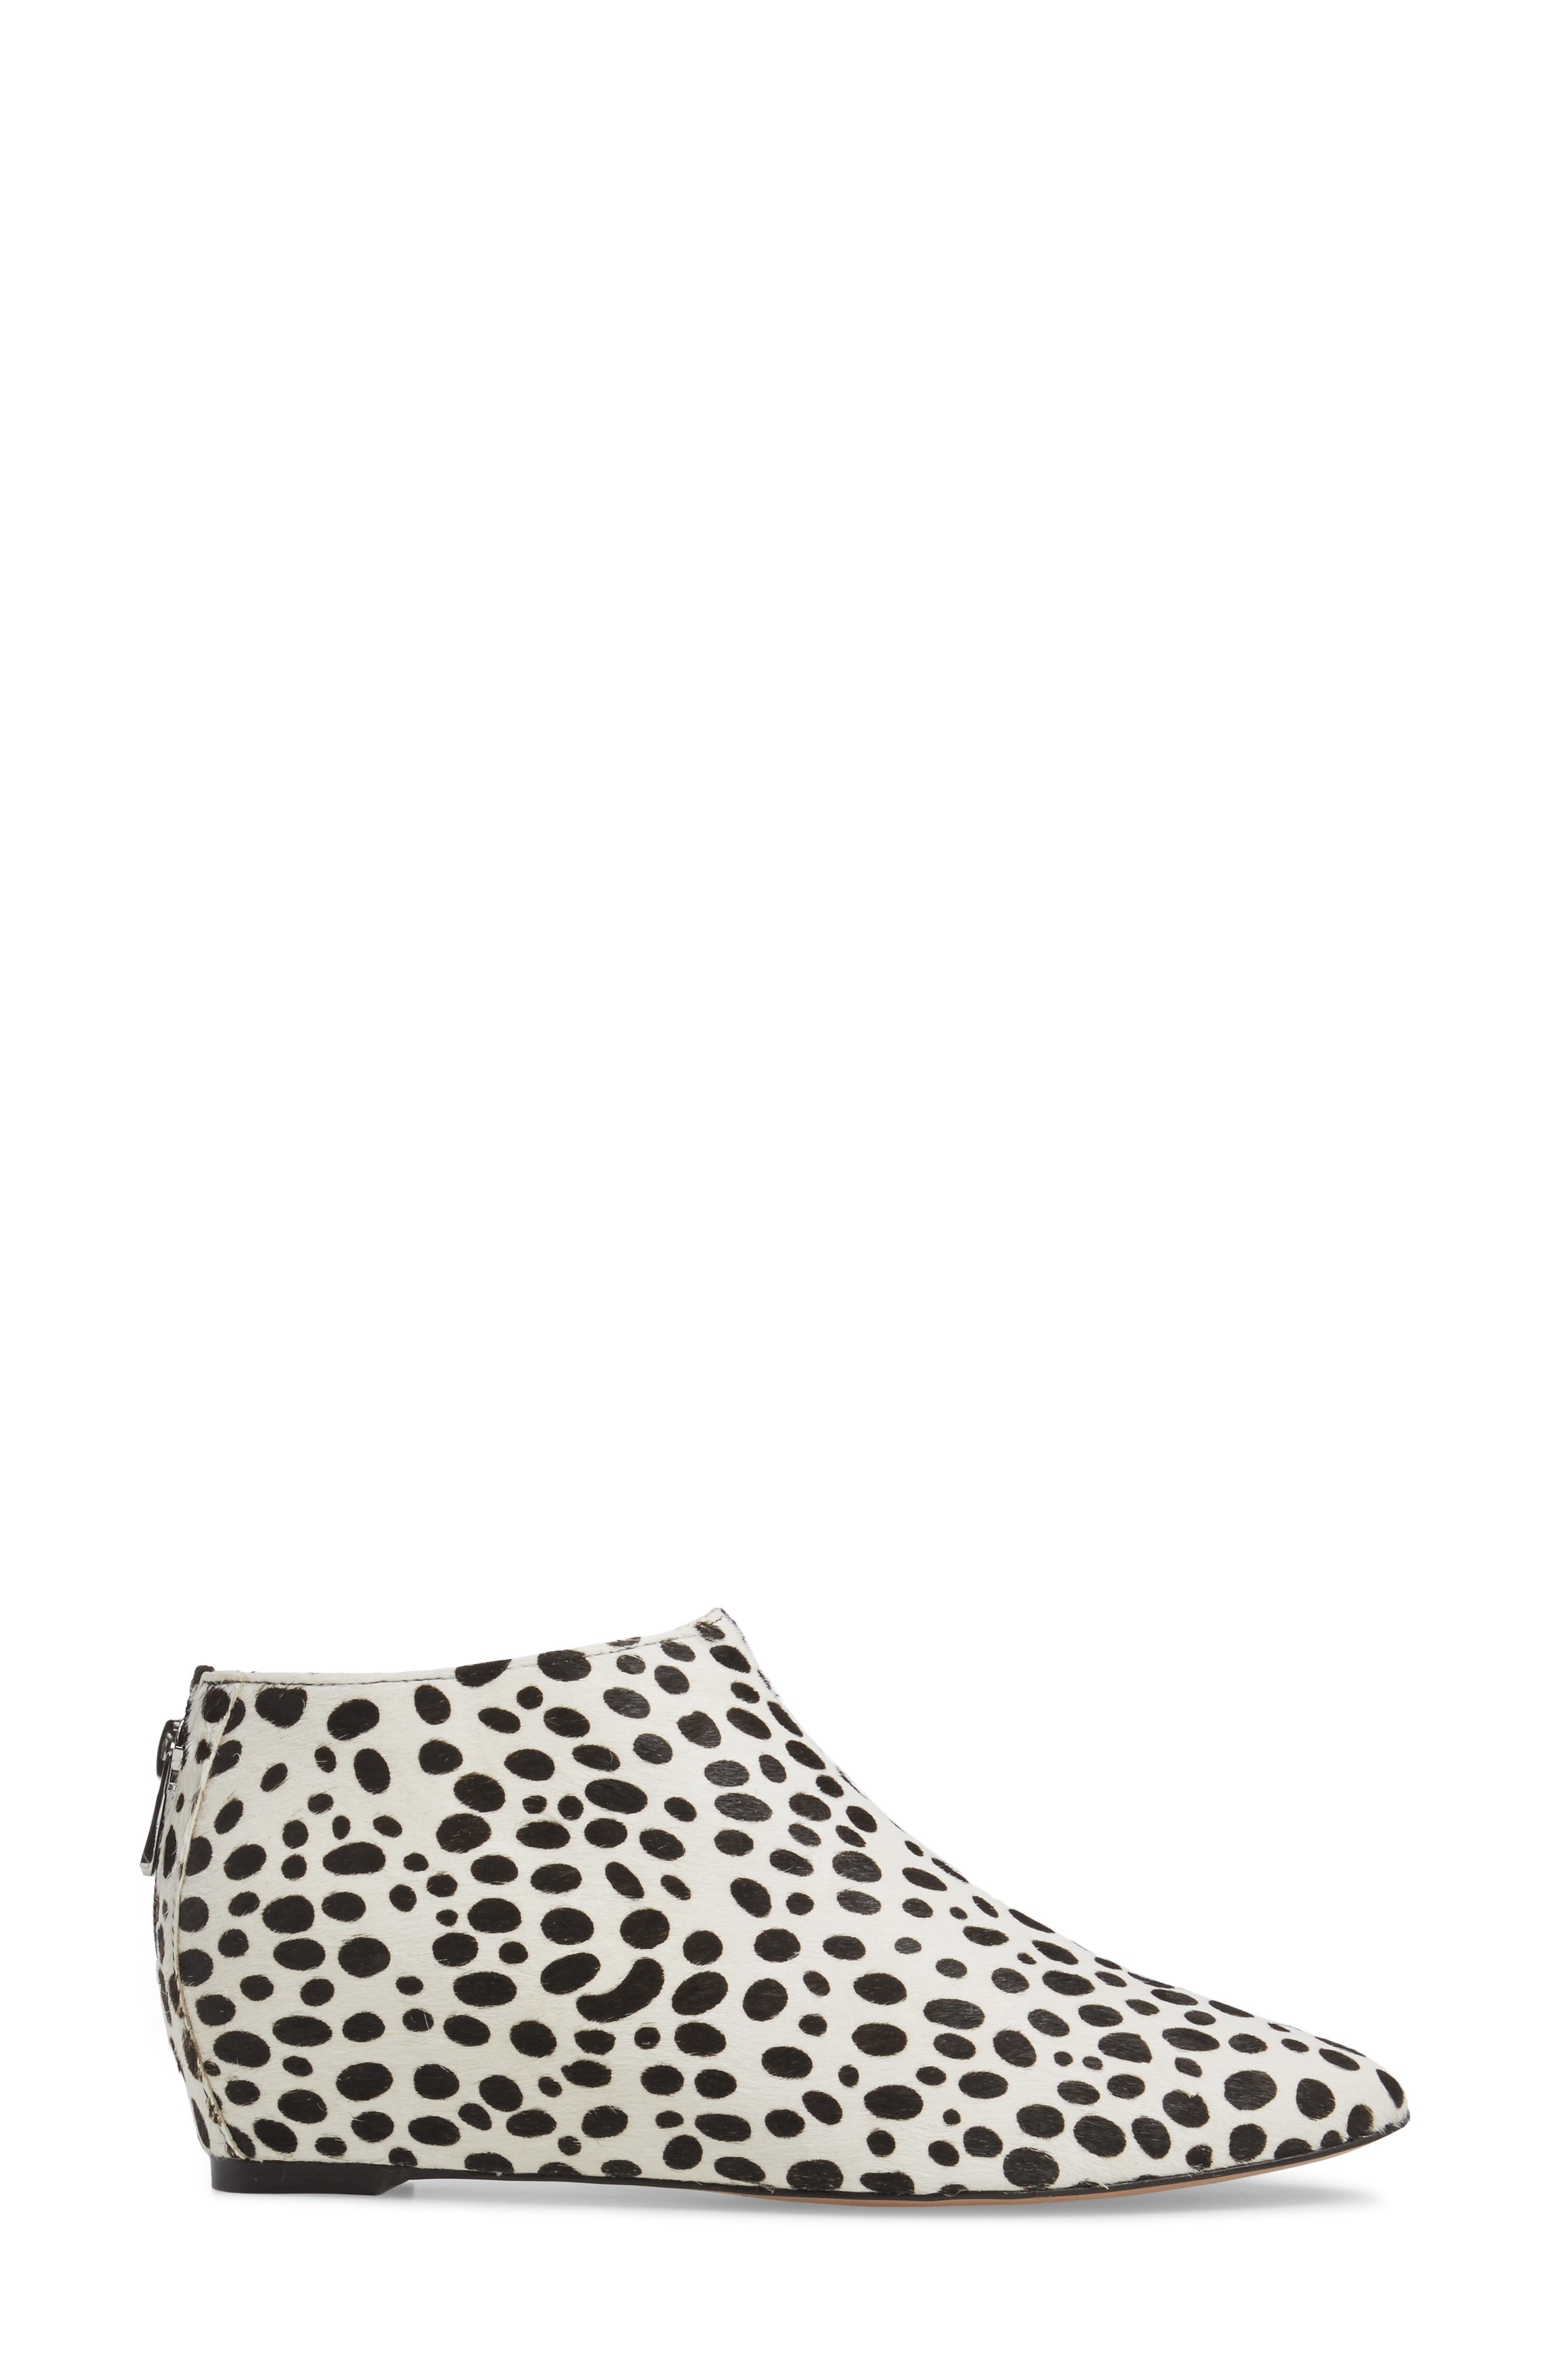 Aves Les Filles Beatrice Ankle Boot,                             Alternate thumbnail 10, color,